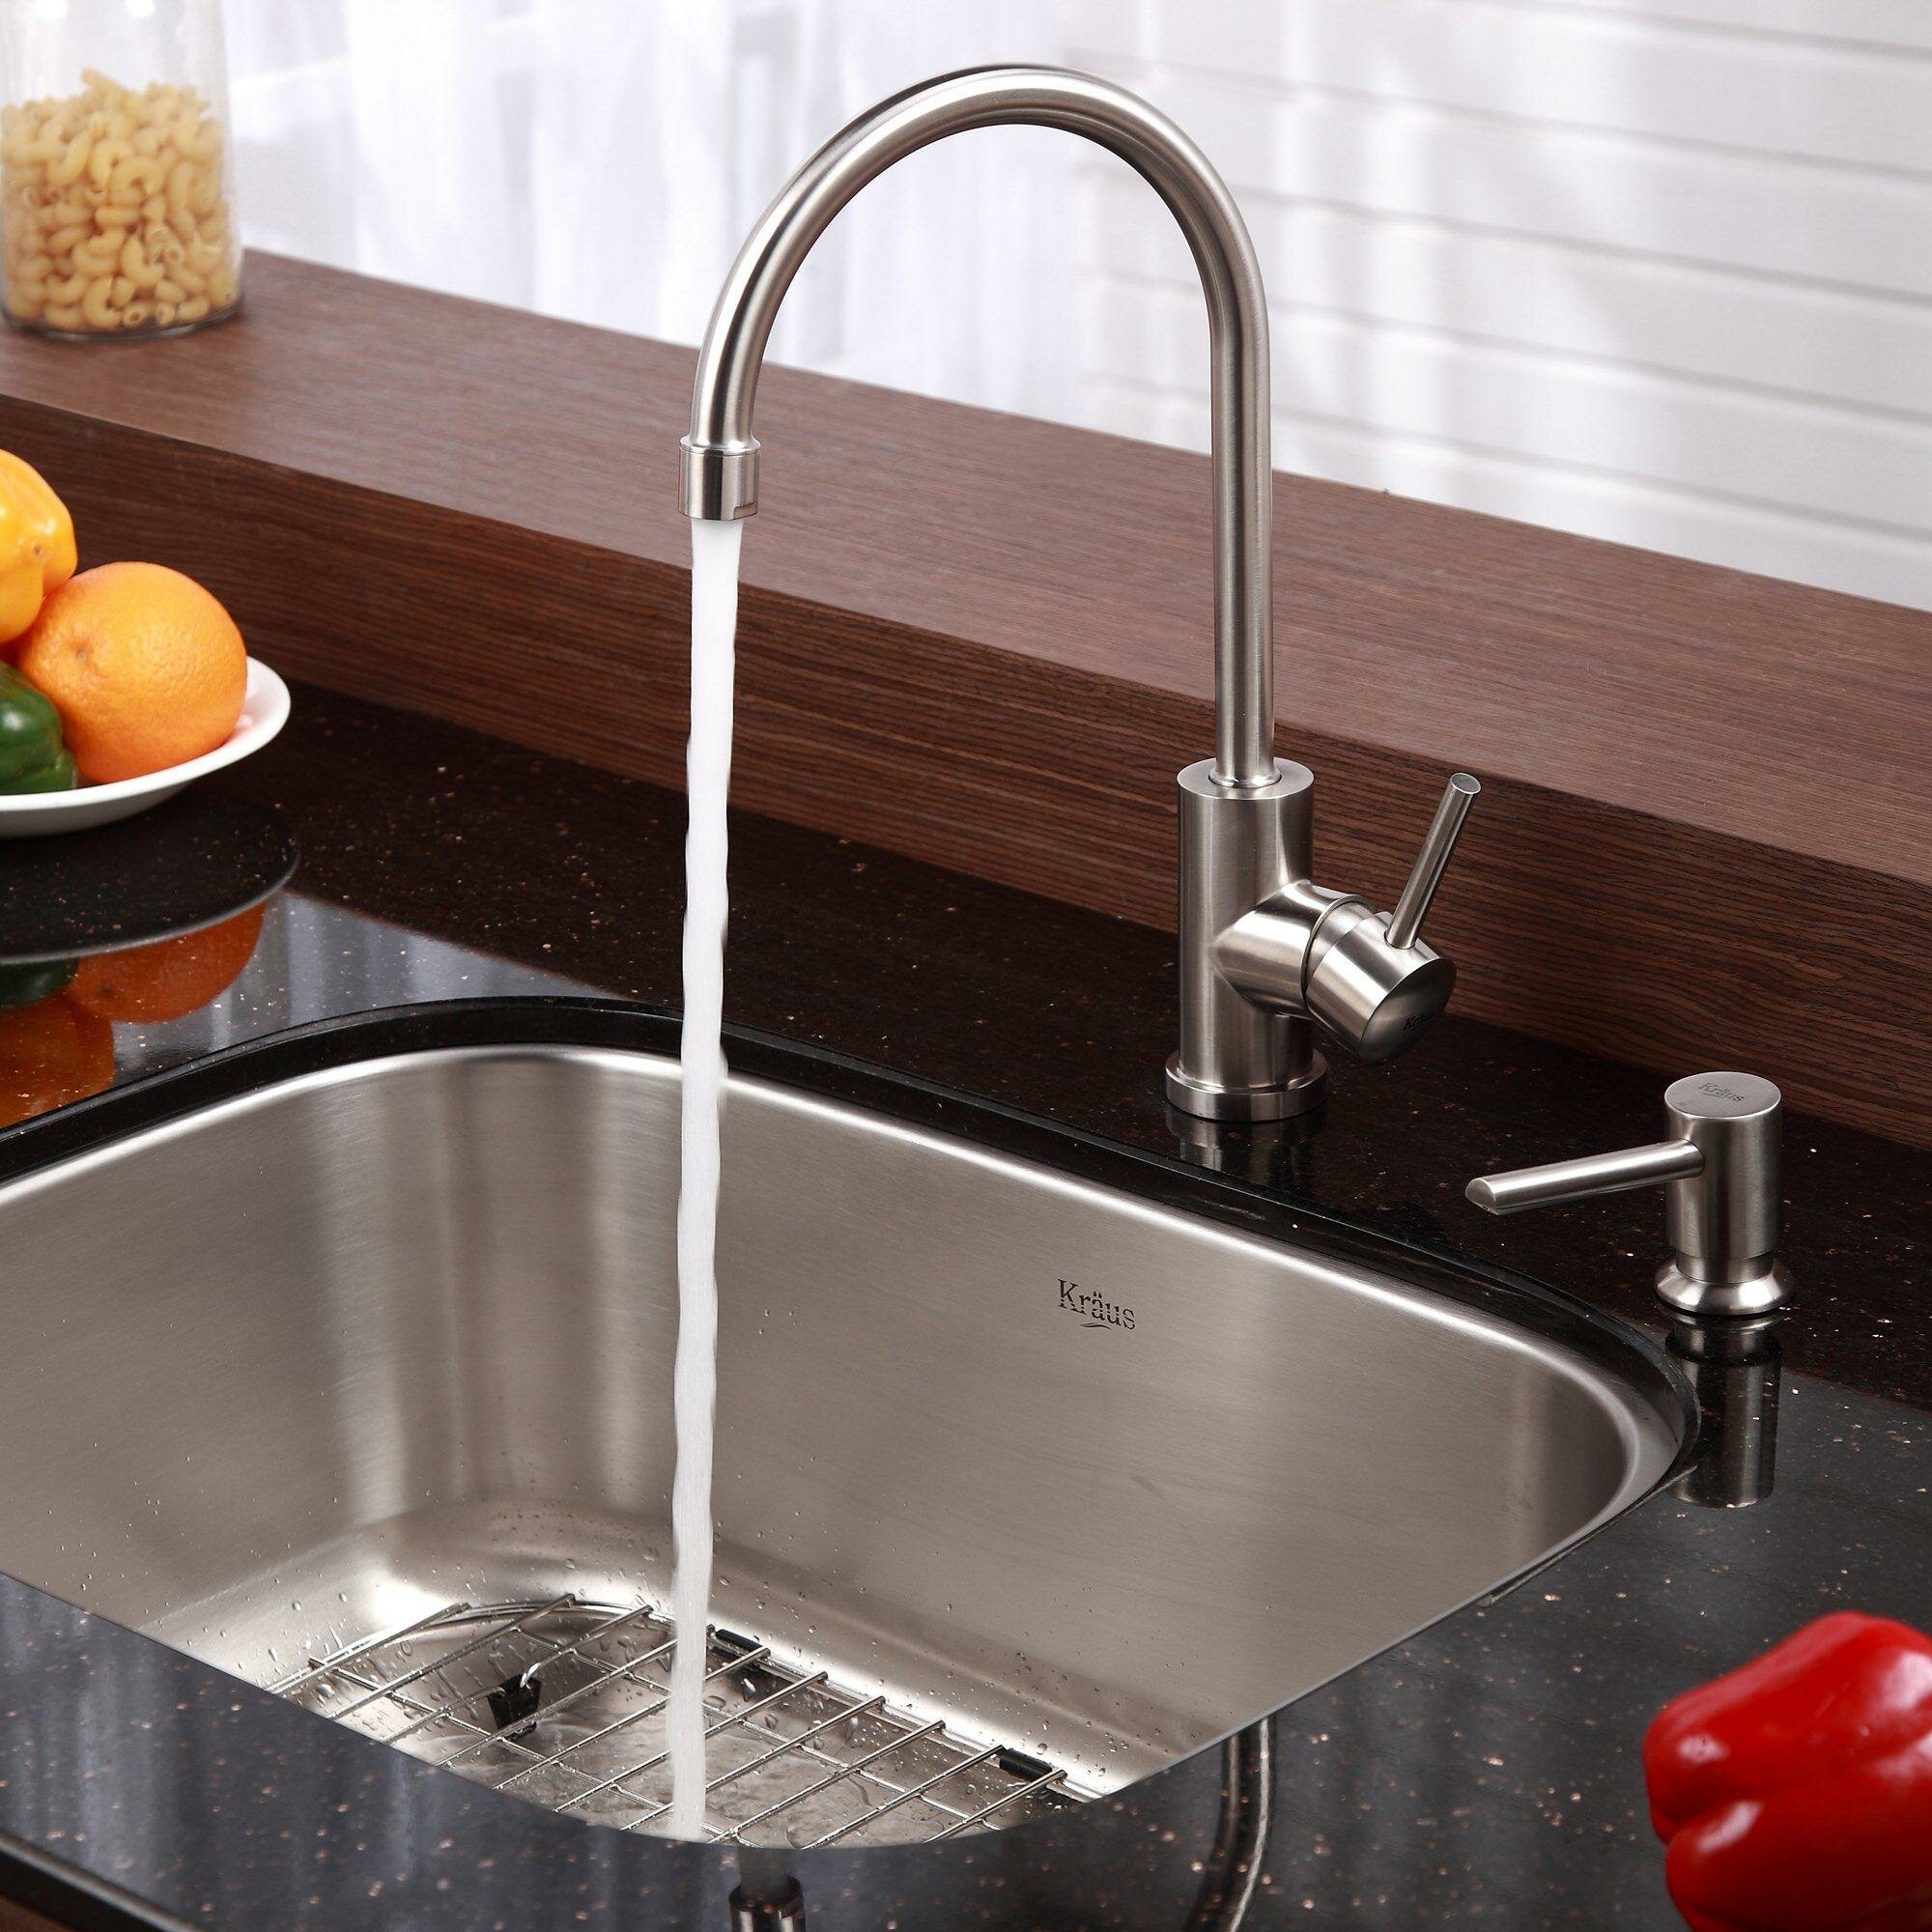 Kraus Single Bowl Undermount Kitchen Sink